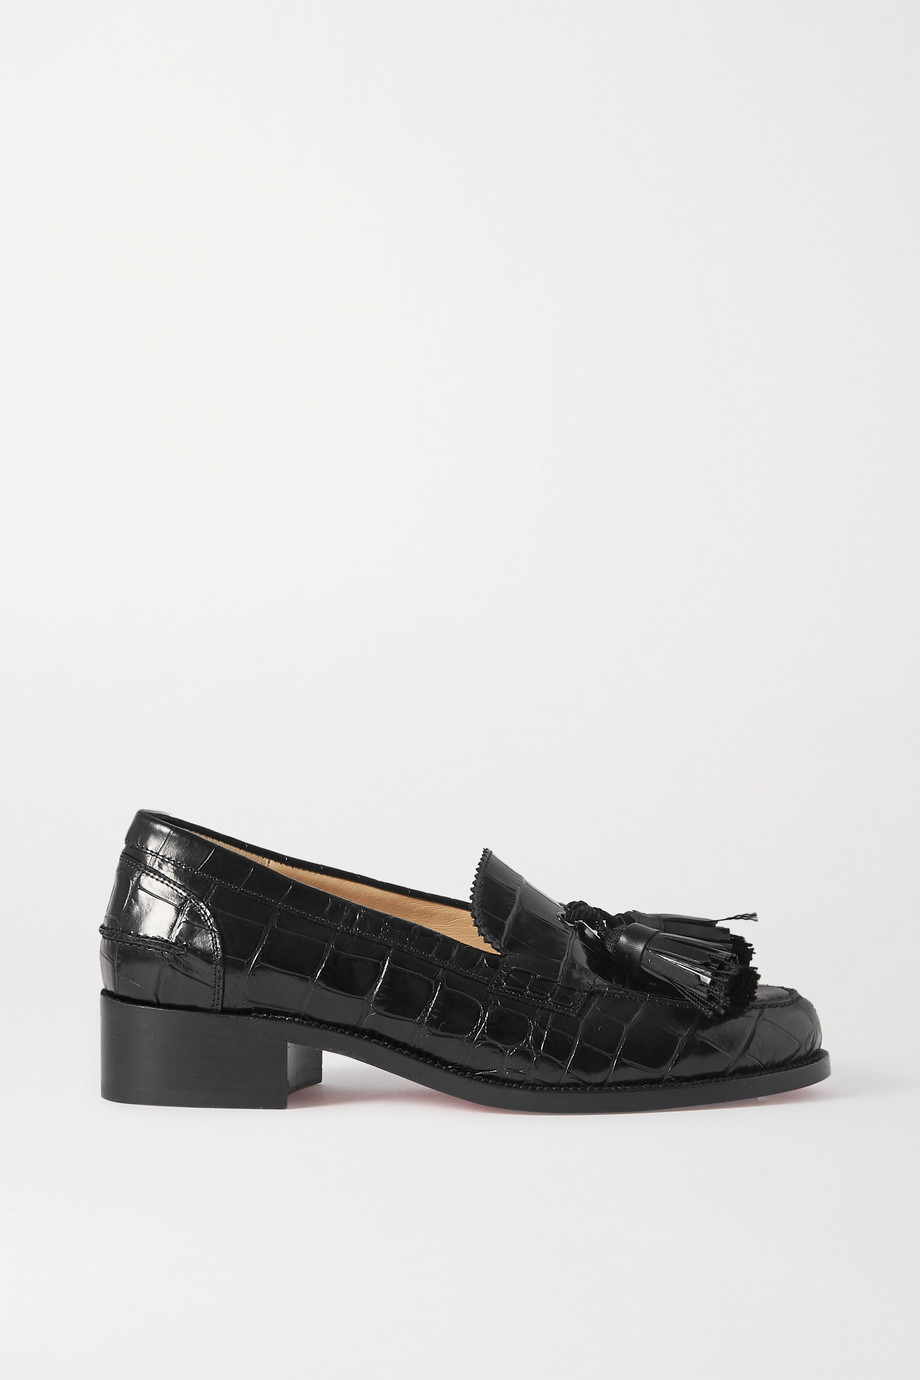 Christian Louboutin Badmoc tasseled croc-effect leather loafers